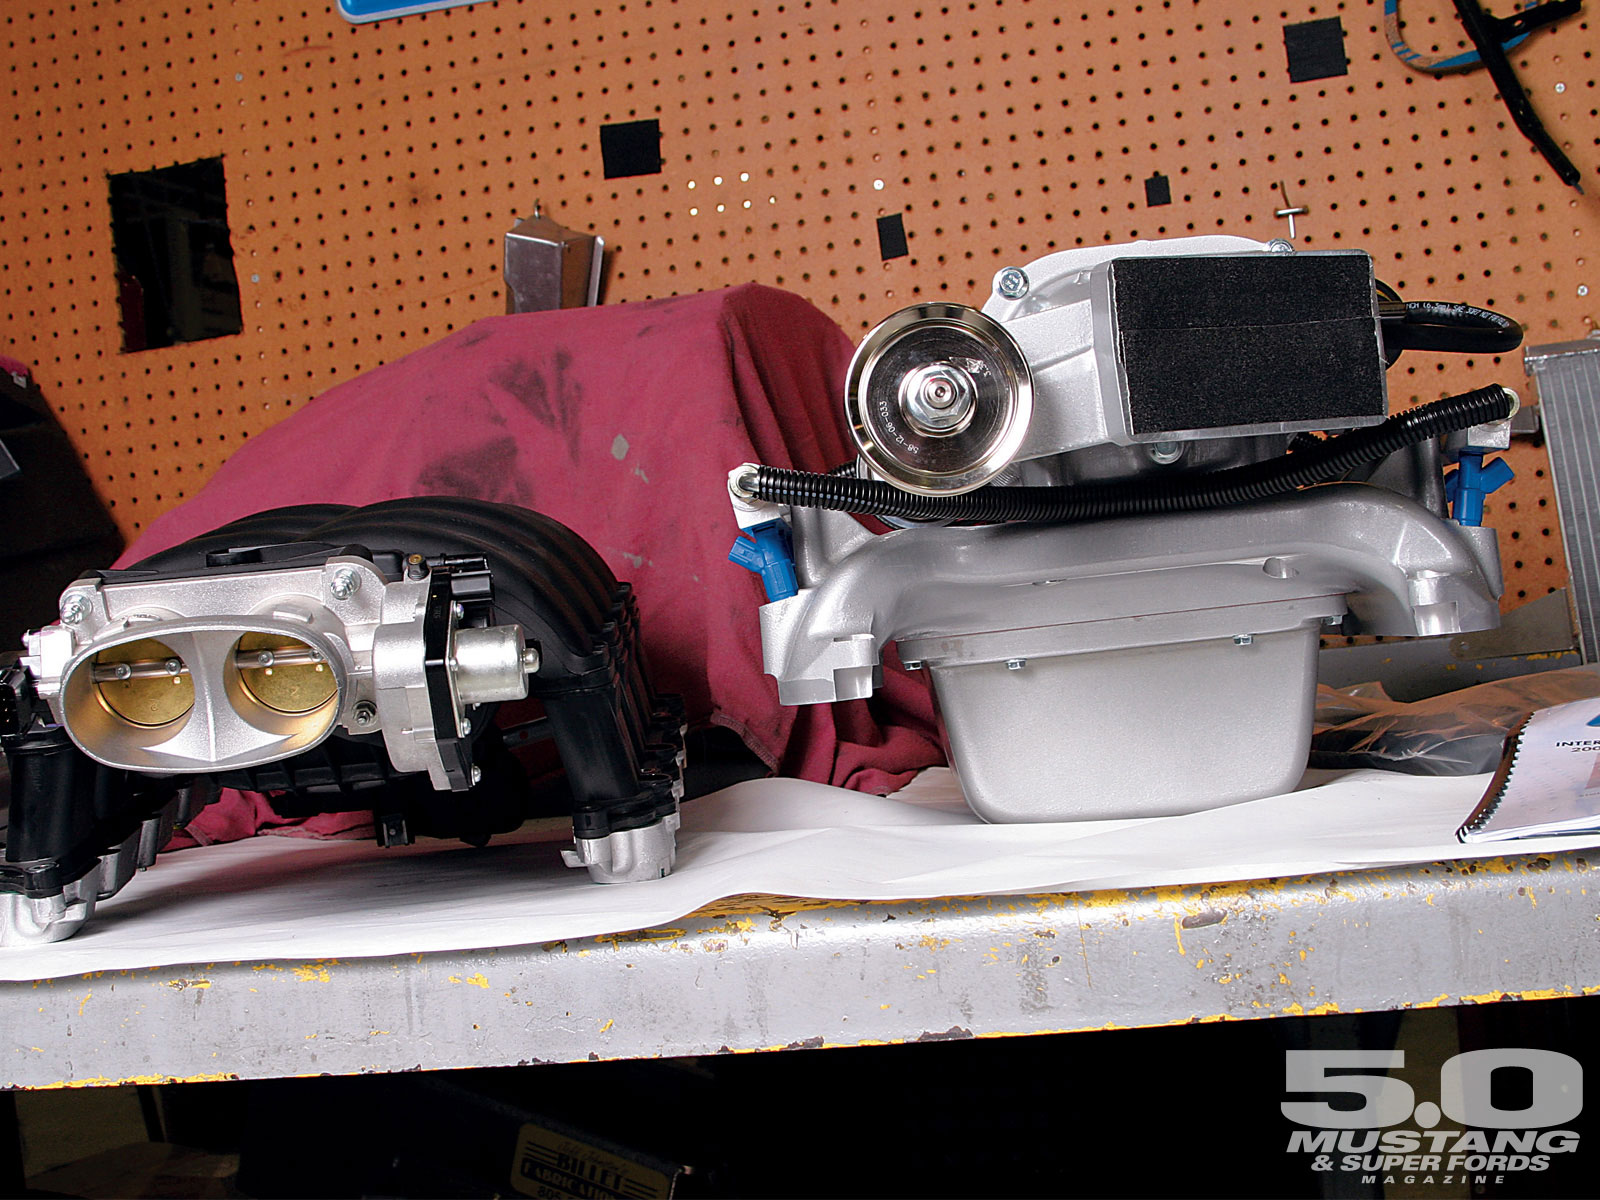 M5lp 0704 09 O Magnacharger Intercooled Supercharger Height Comparison